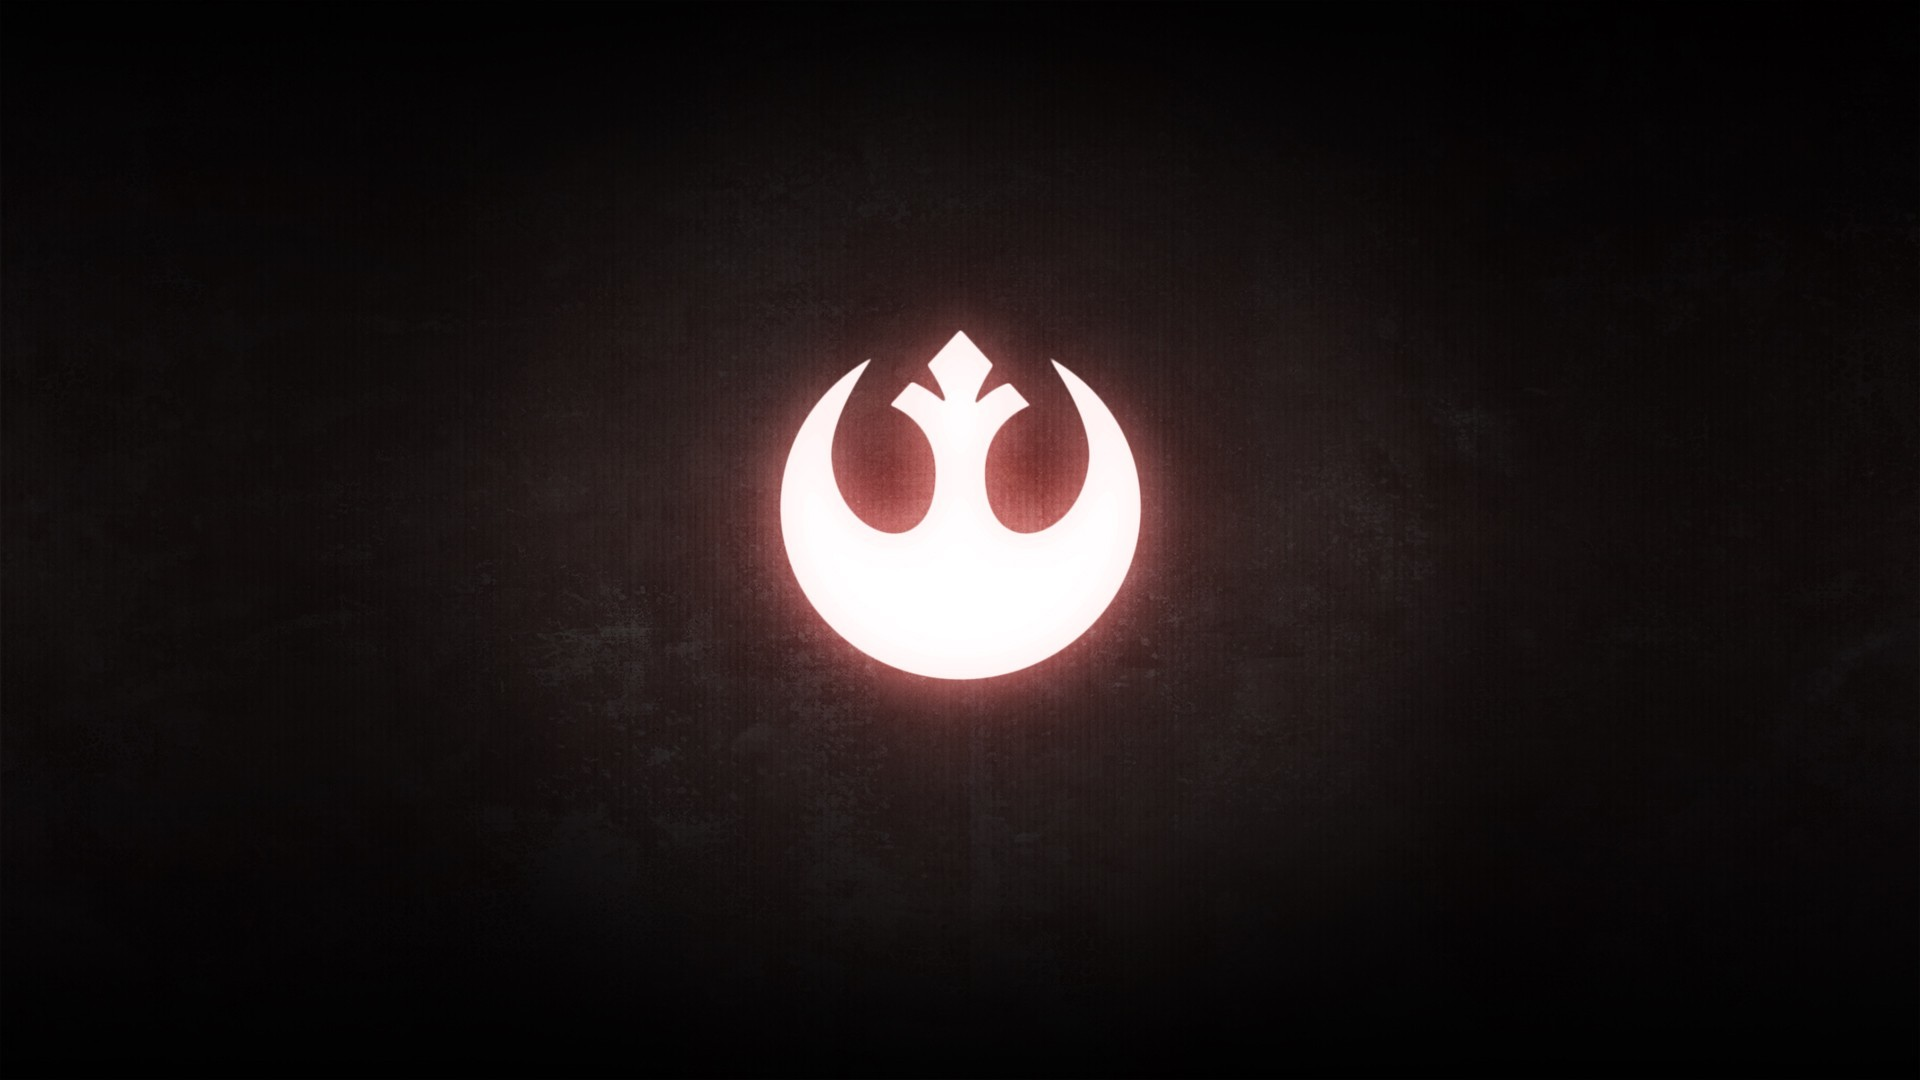 Rebel Alliance Wallpaper 74 Images